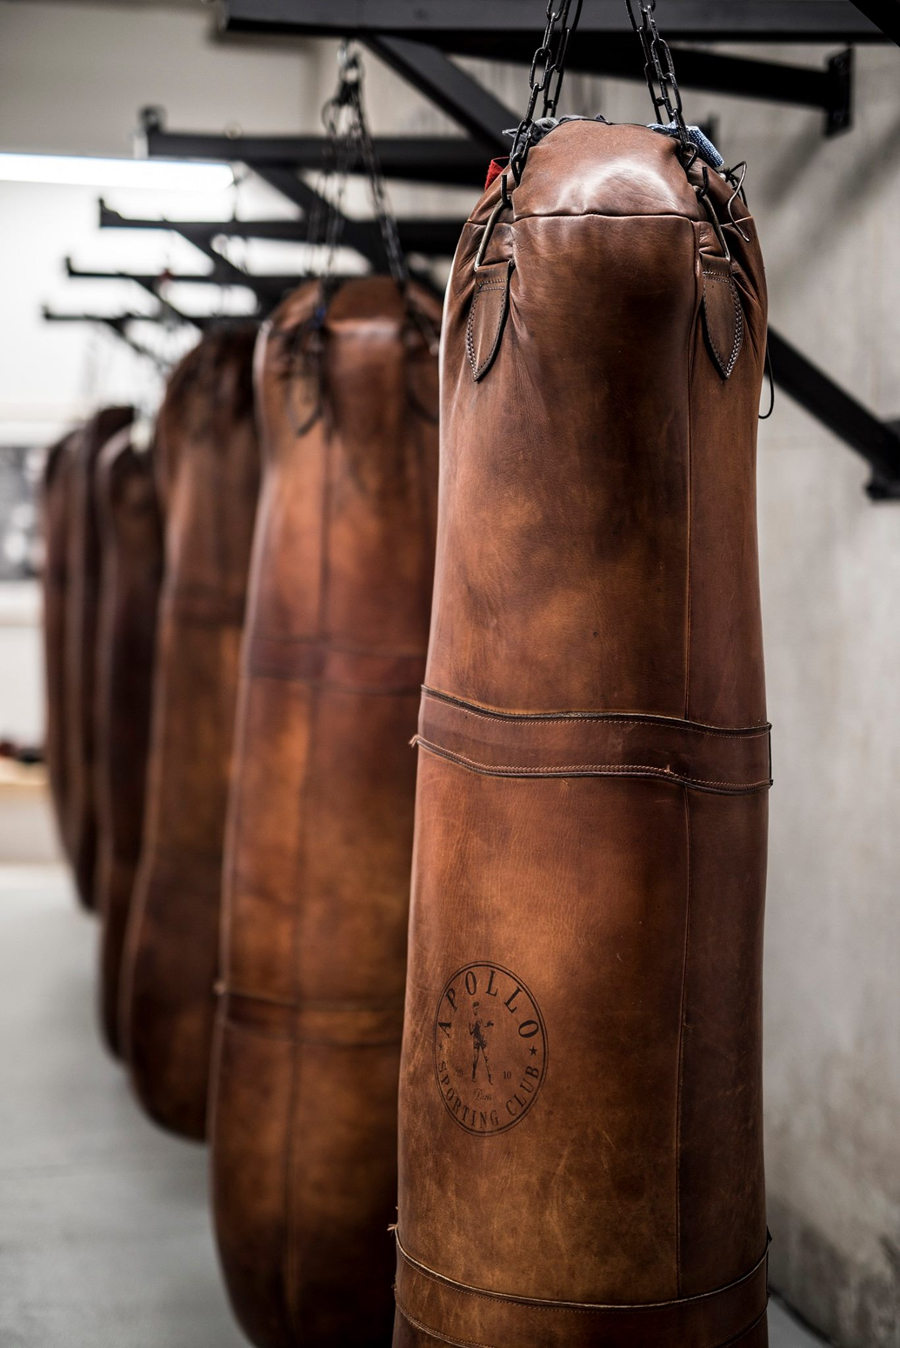 Sac de frappe de boxe vintage en cuir à Apollo Sporting Club Paris